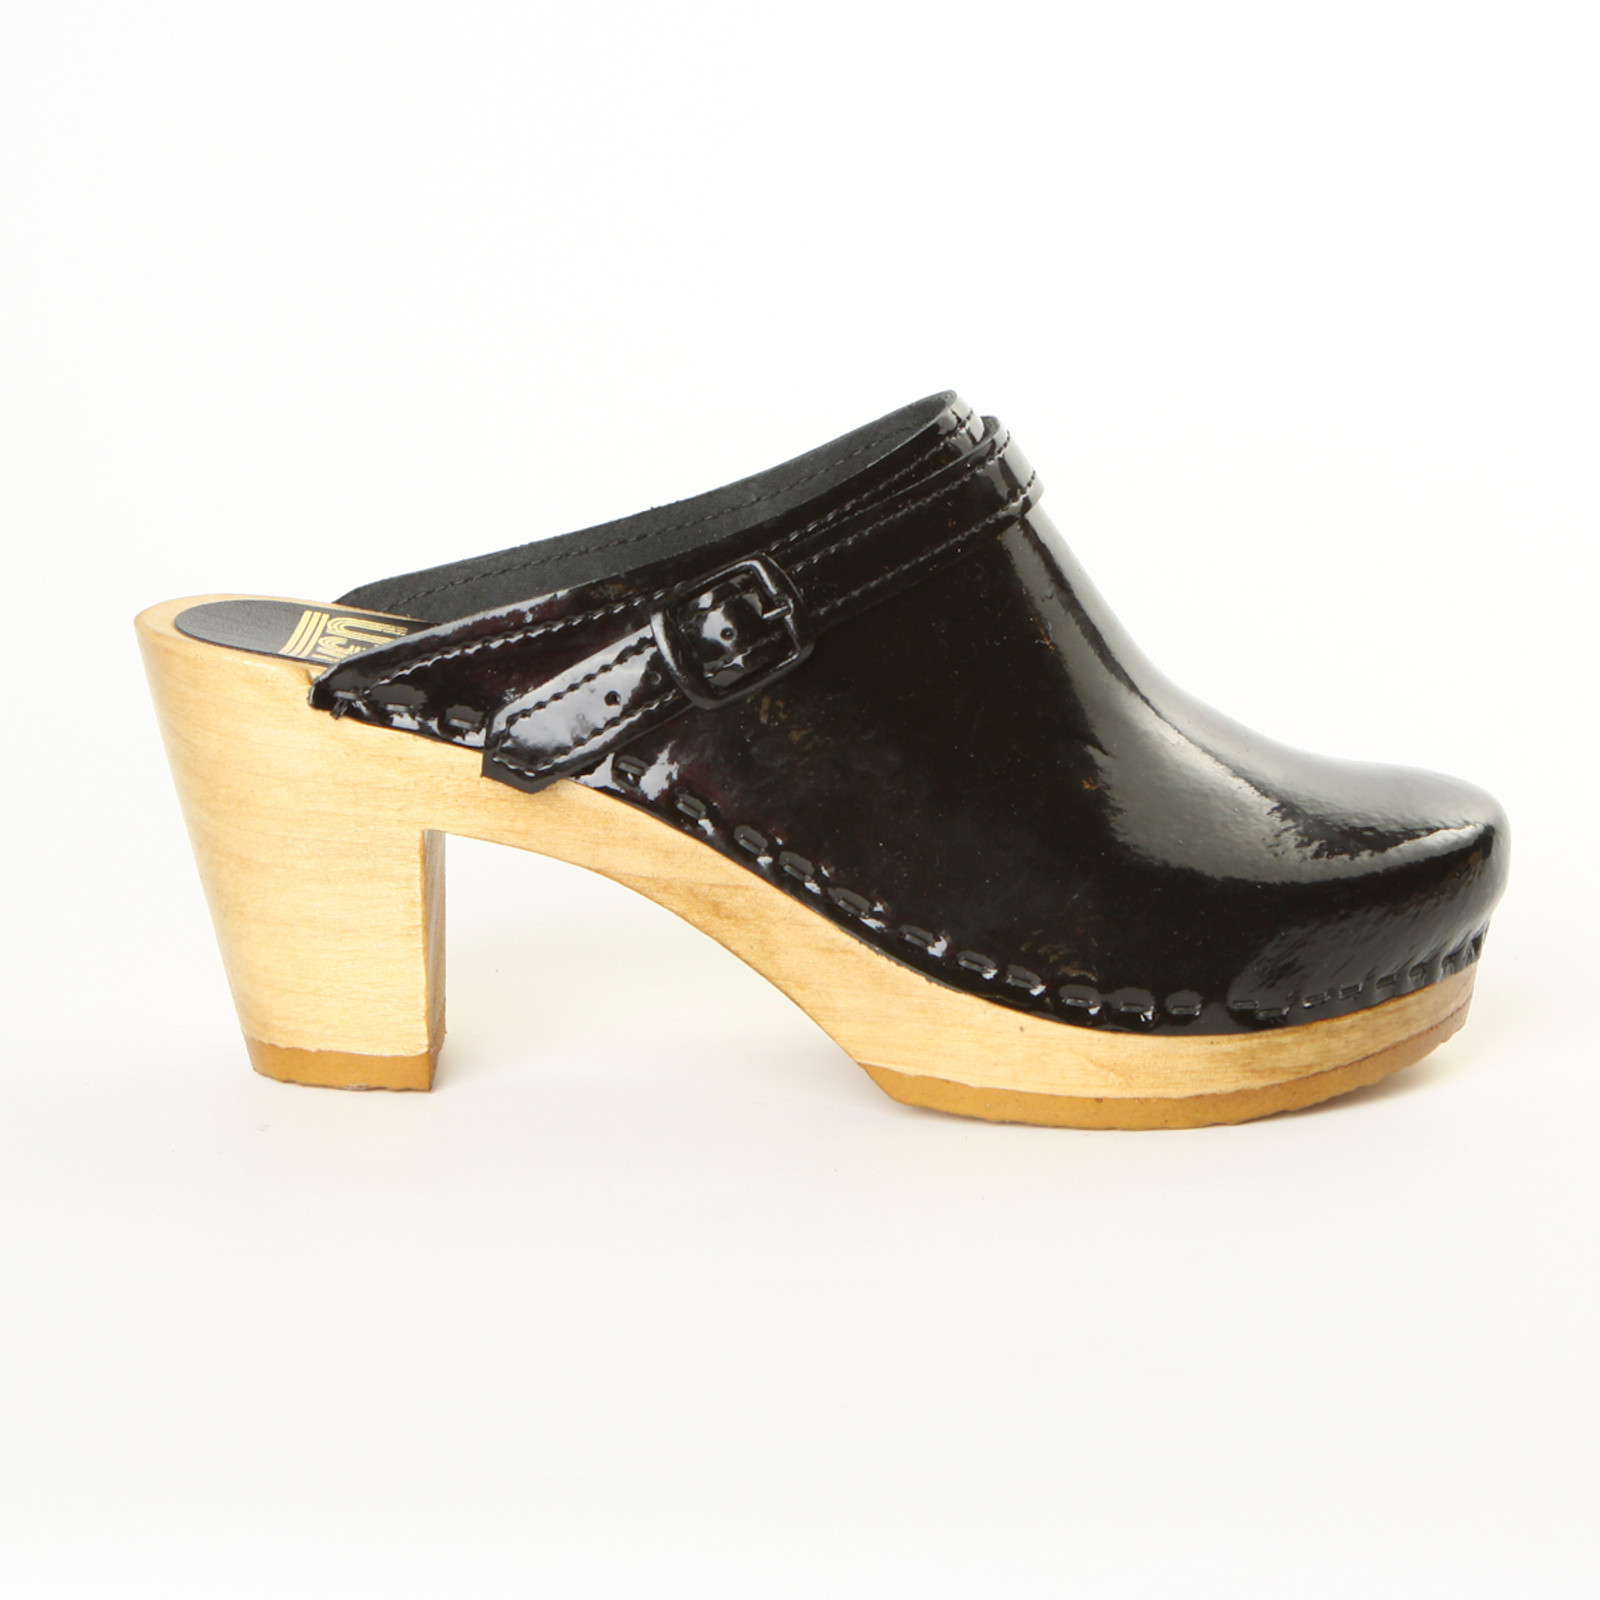 Black Patent Leather with Brown Base.